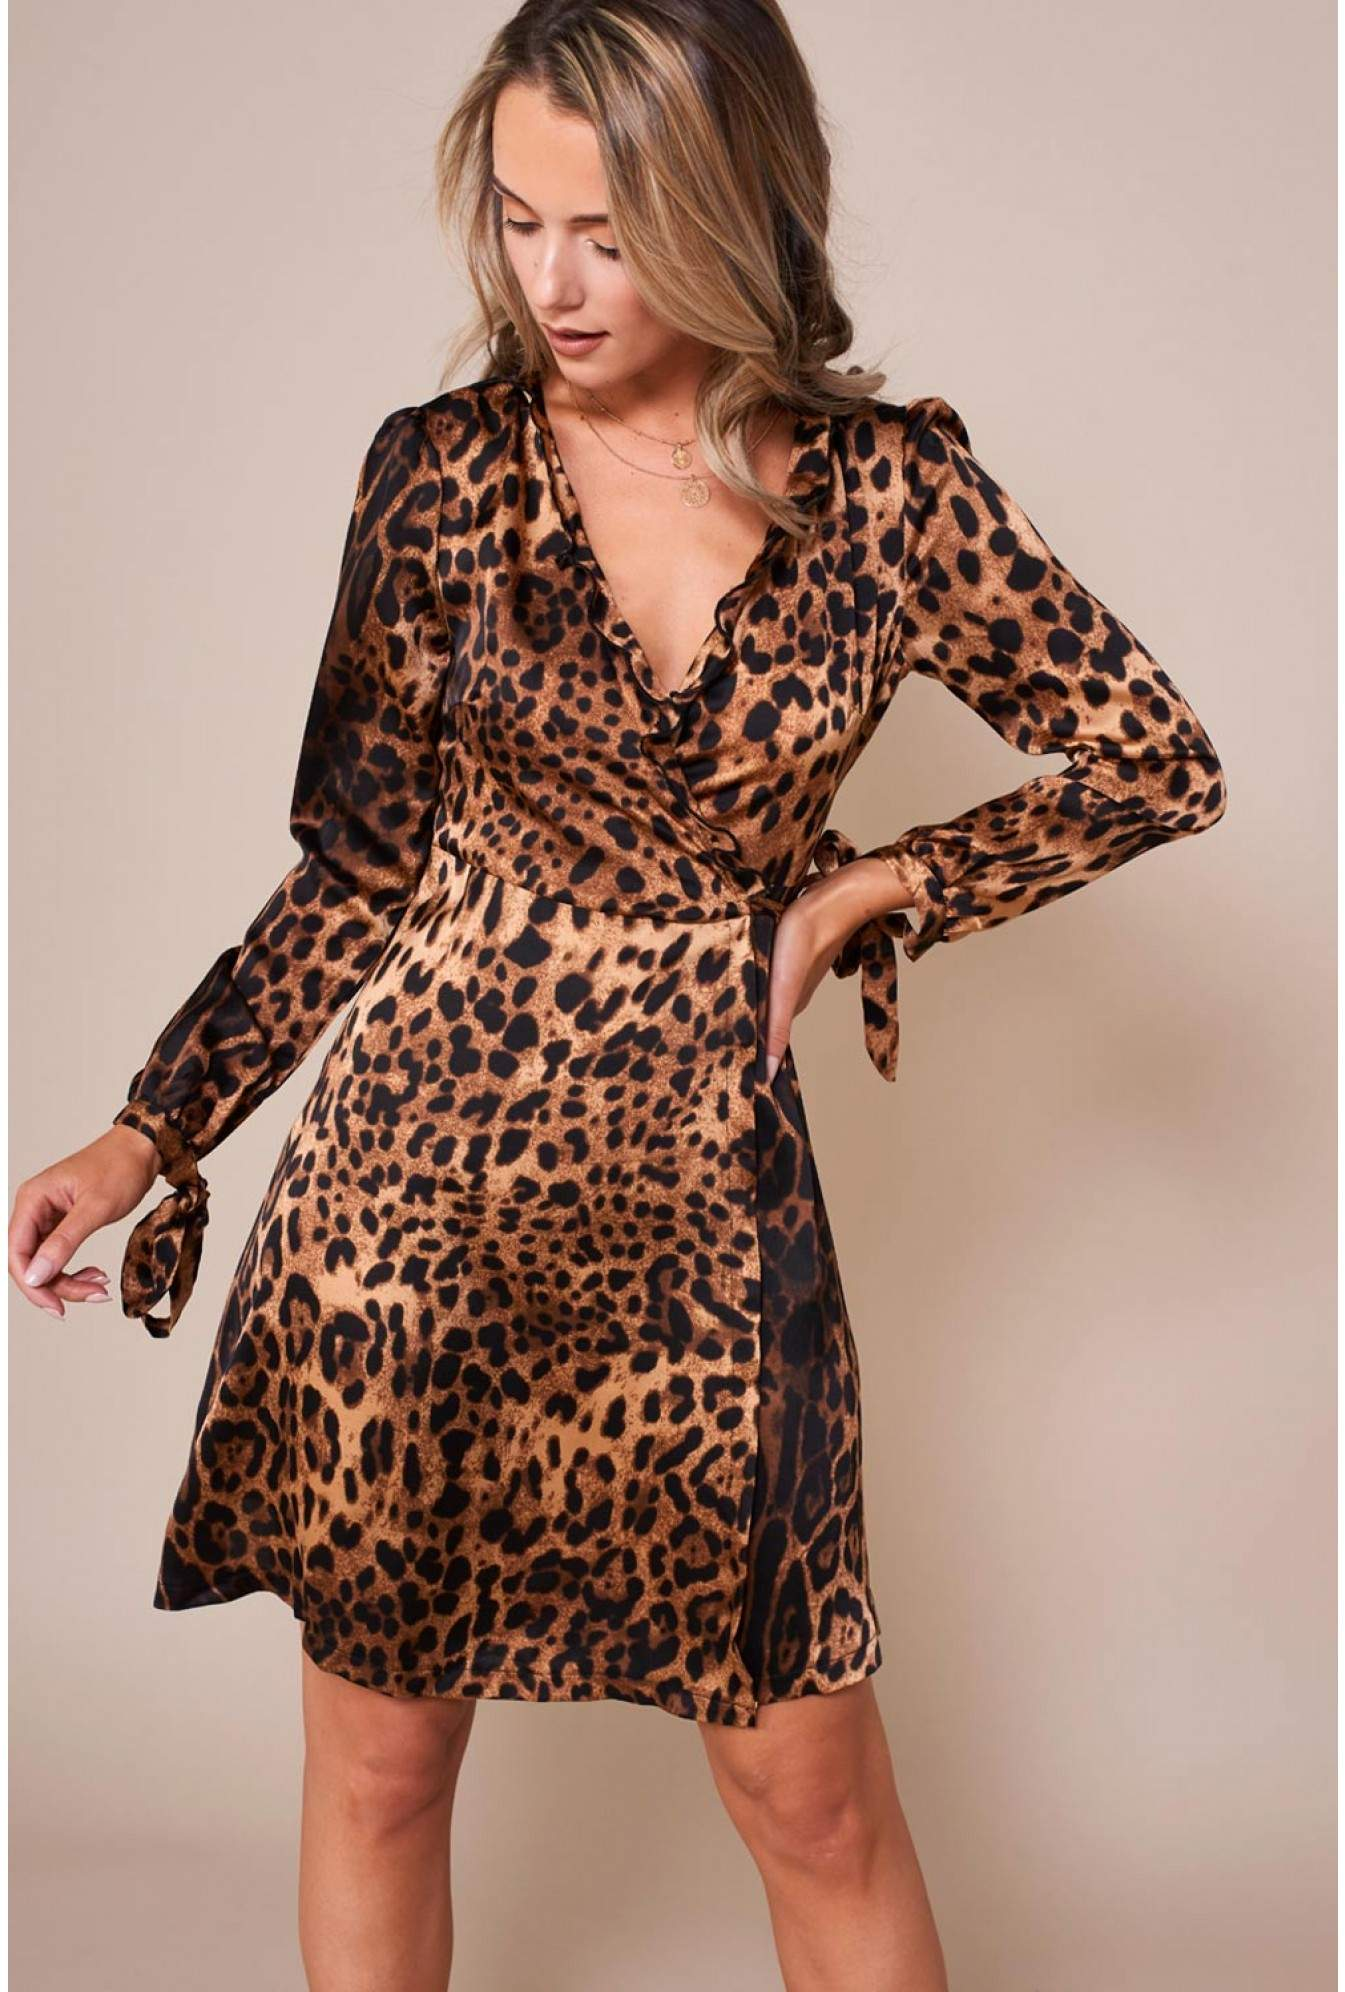 95fe04c2b8 More Views. Lil leopard Print Wrap Dress